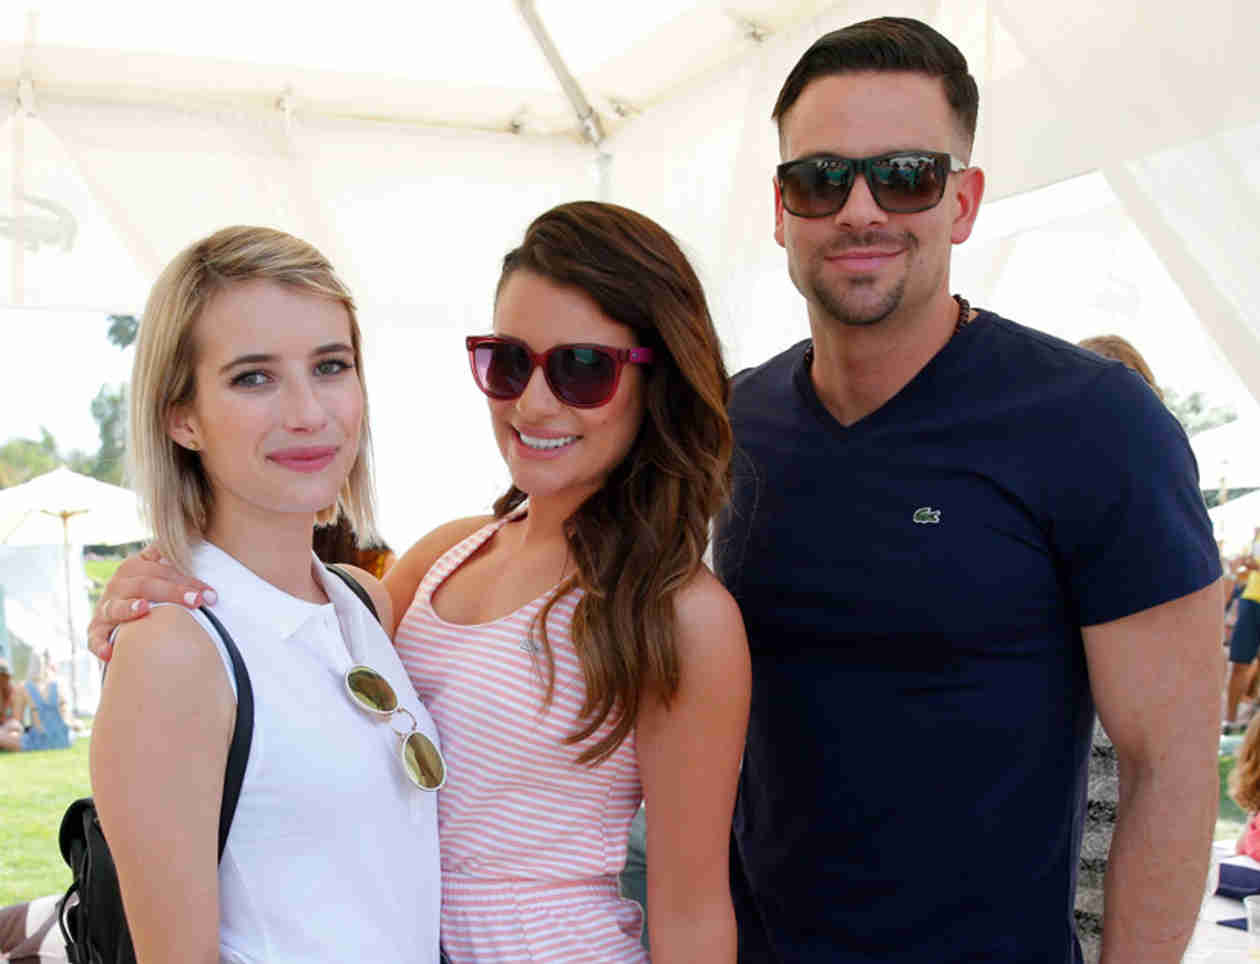 Coachella 2014: Lea Michele Parties With Katy Perry, Beyonce Dances For Fans (PHOTOS, VIDEO)